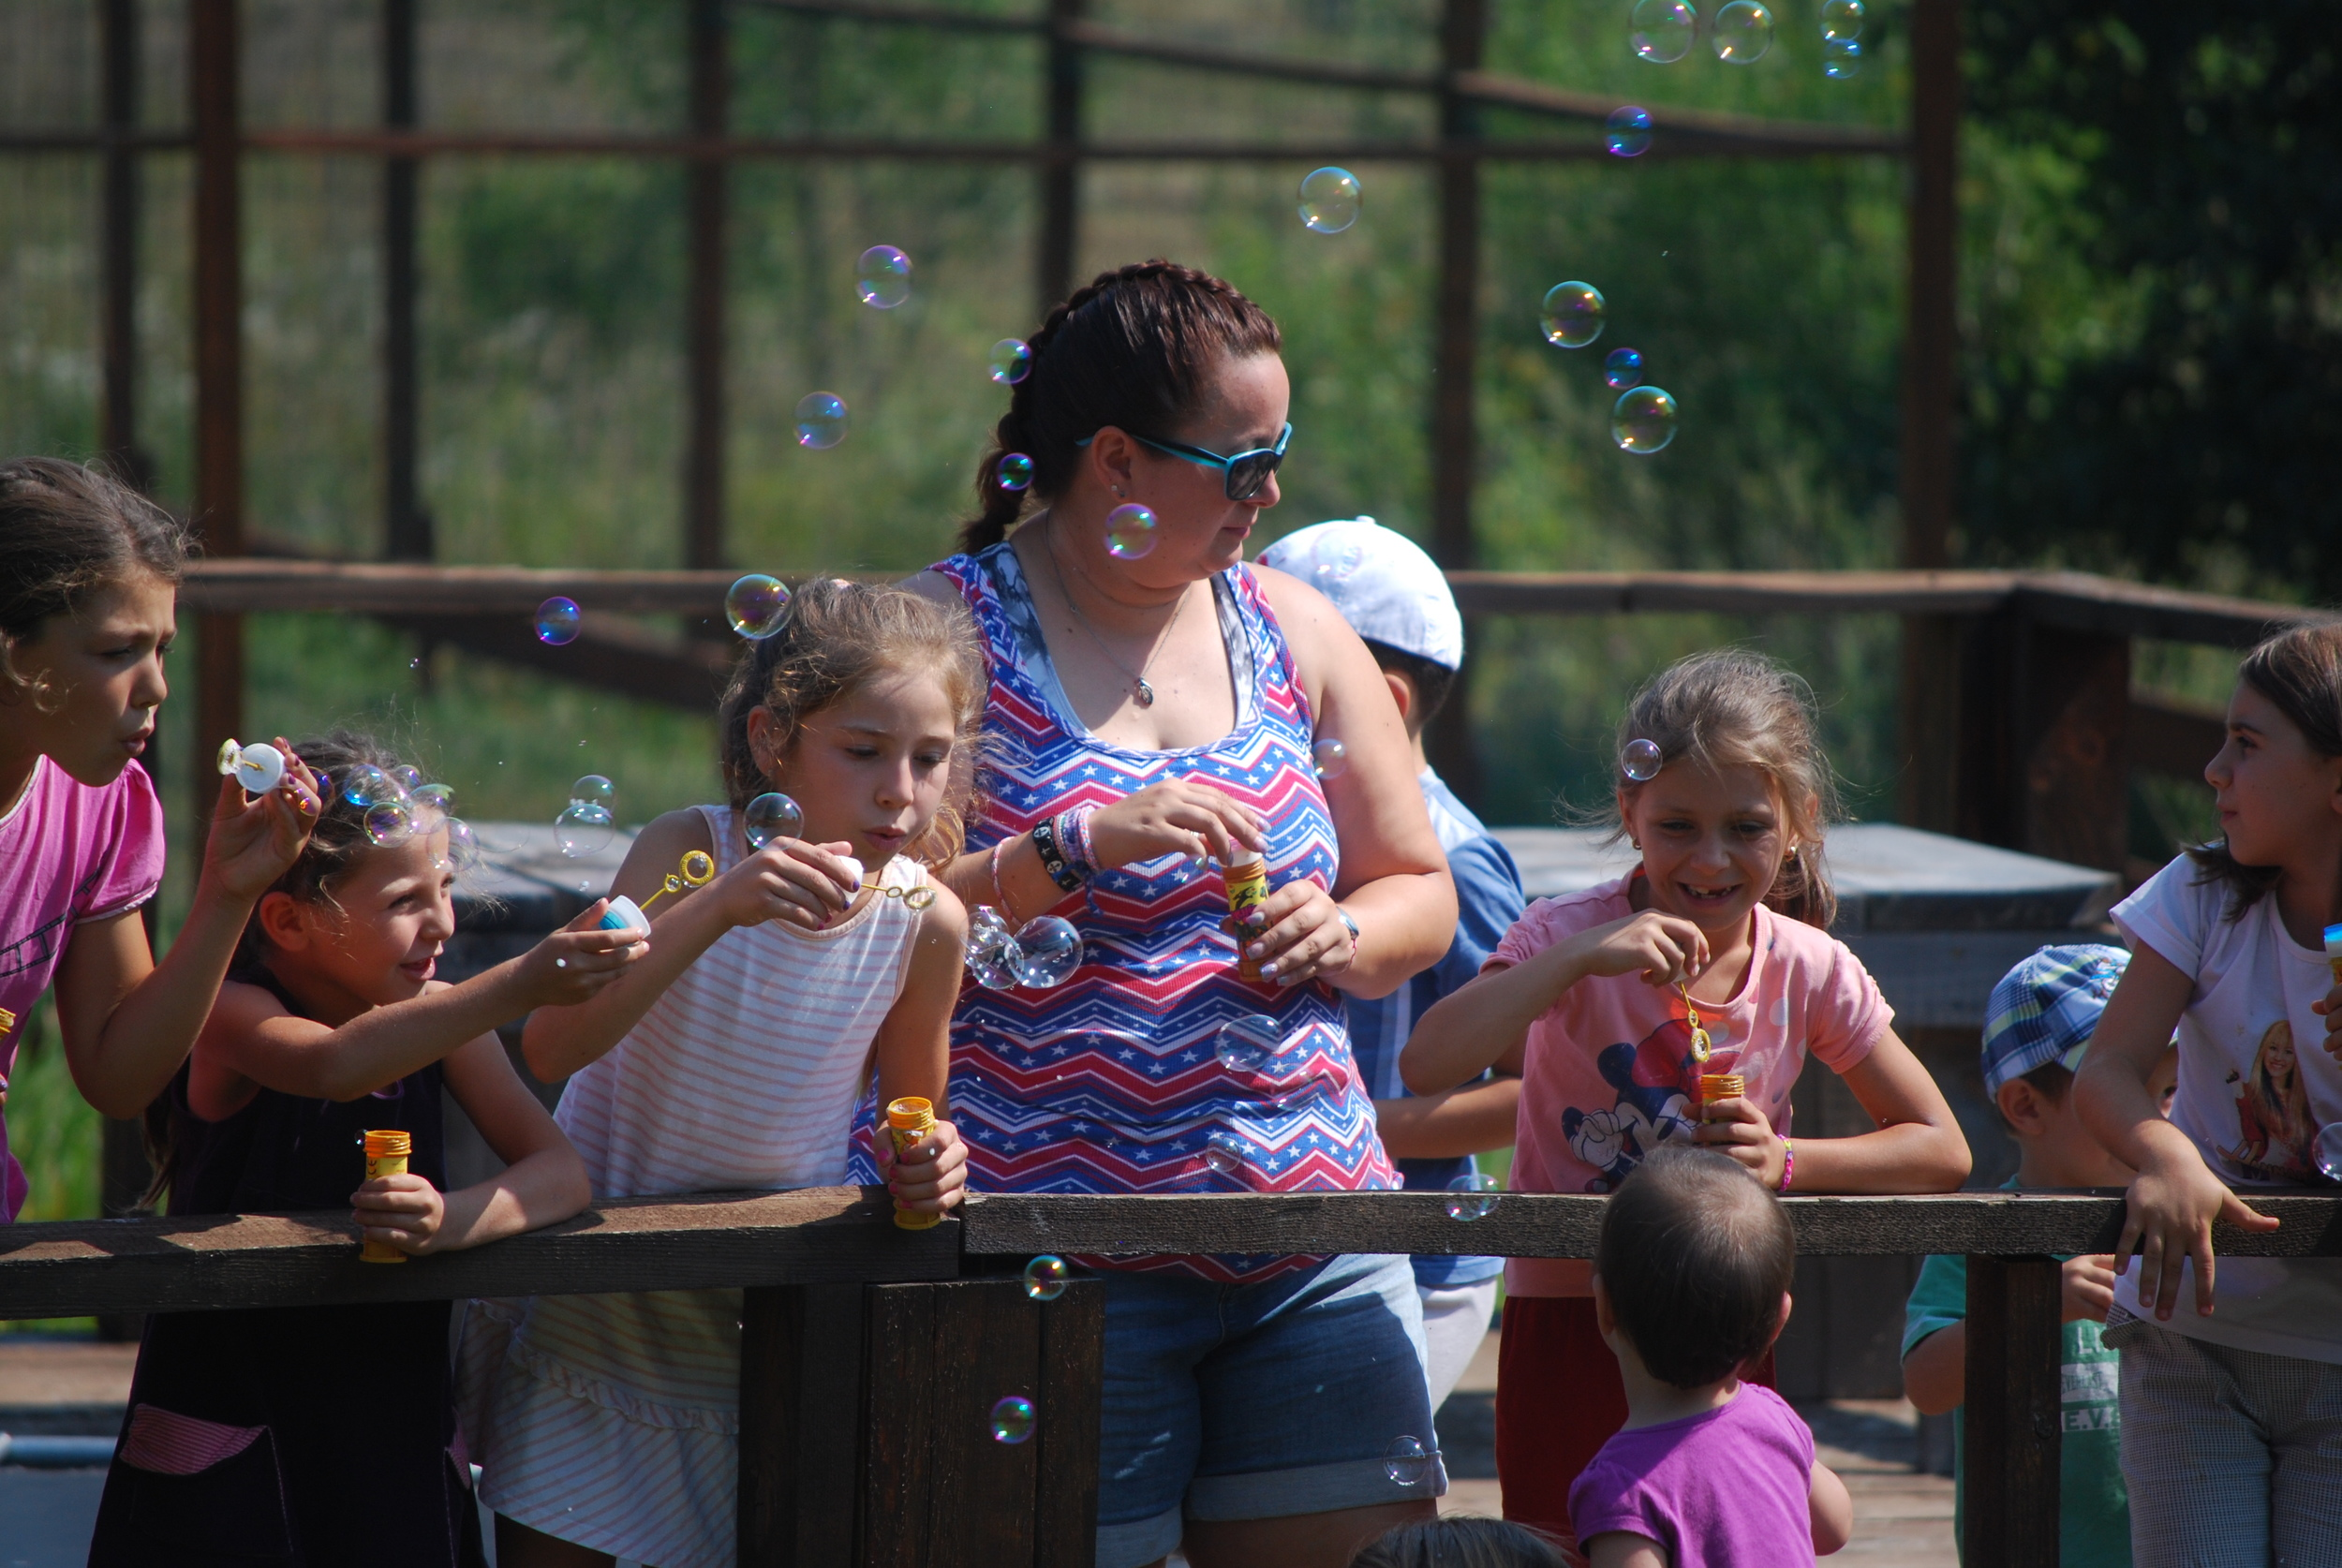 Every day we had lots of fun activities like bubbles...